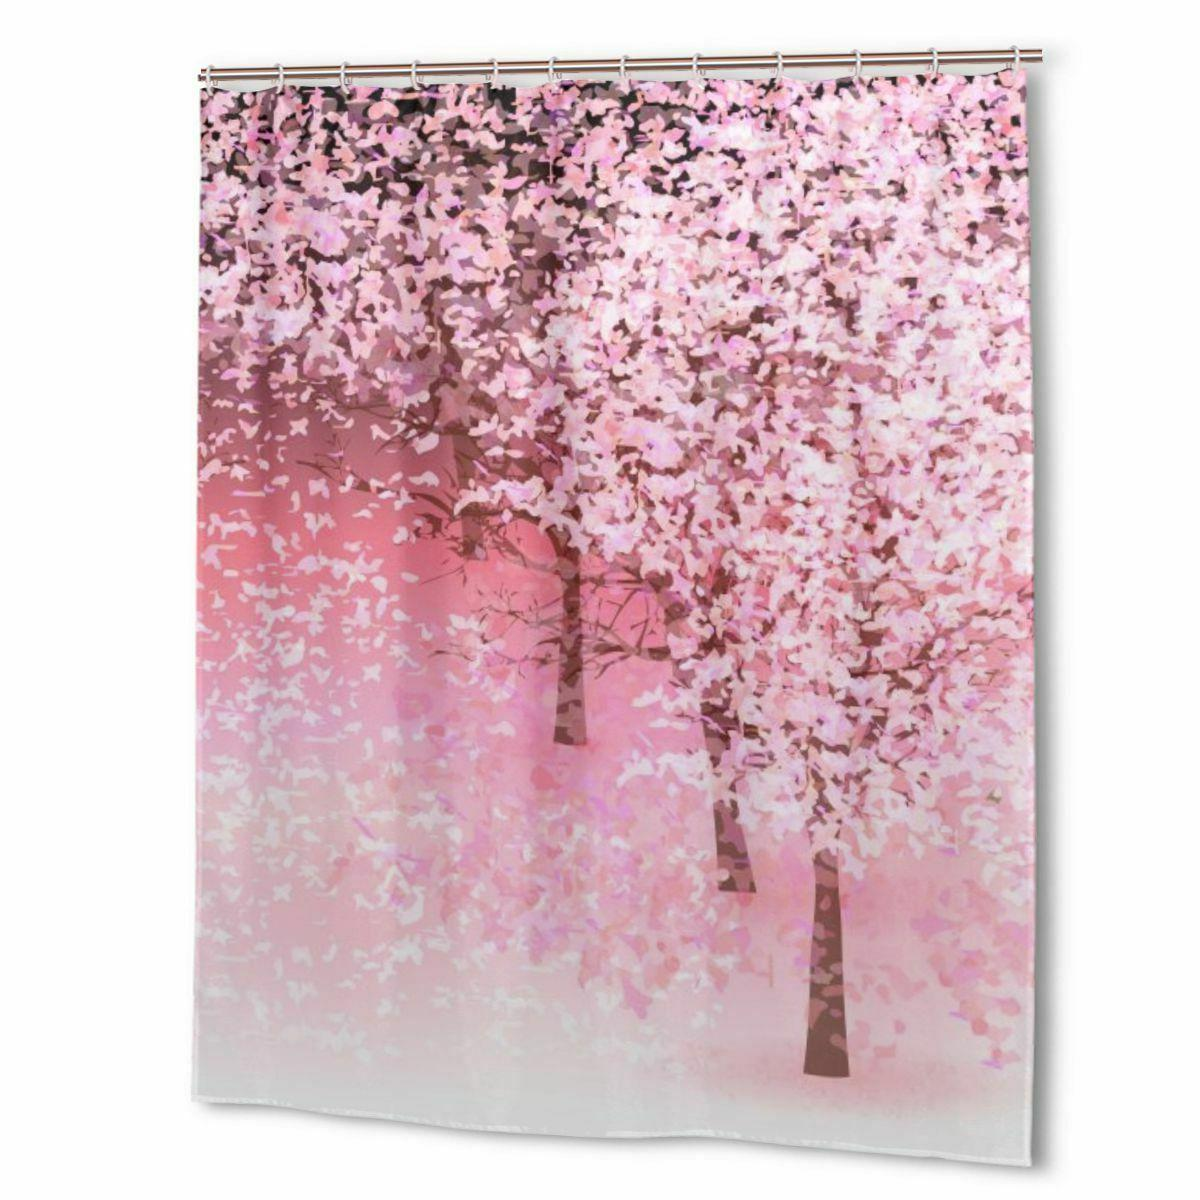 Small Flowers Floral Waterproof Bathroom Shower Curtain with